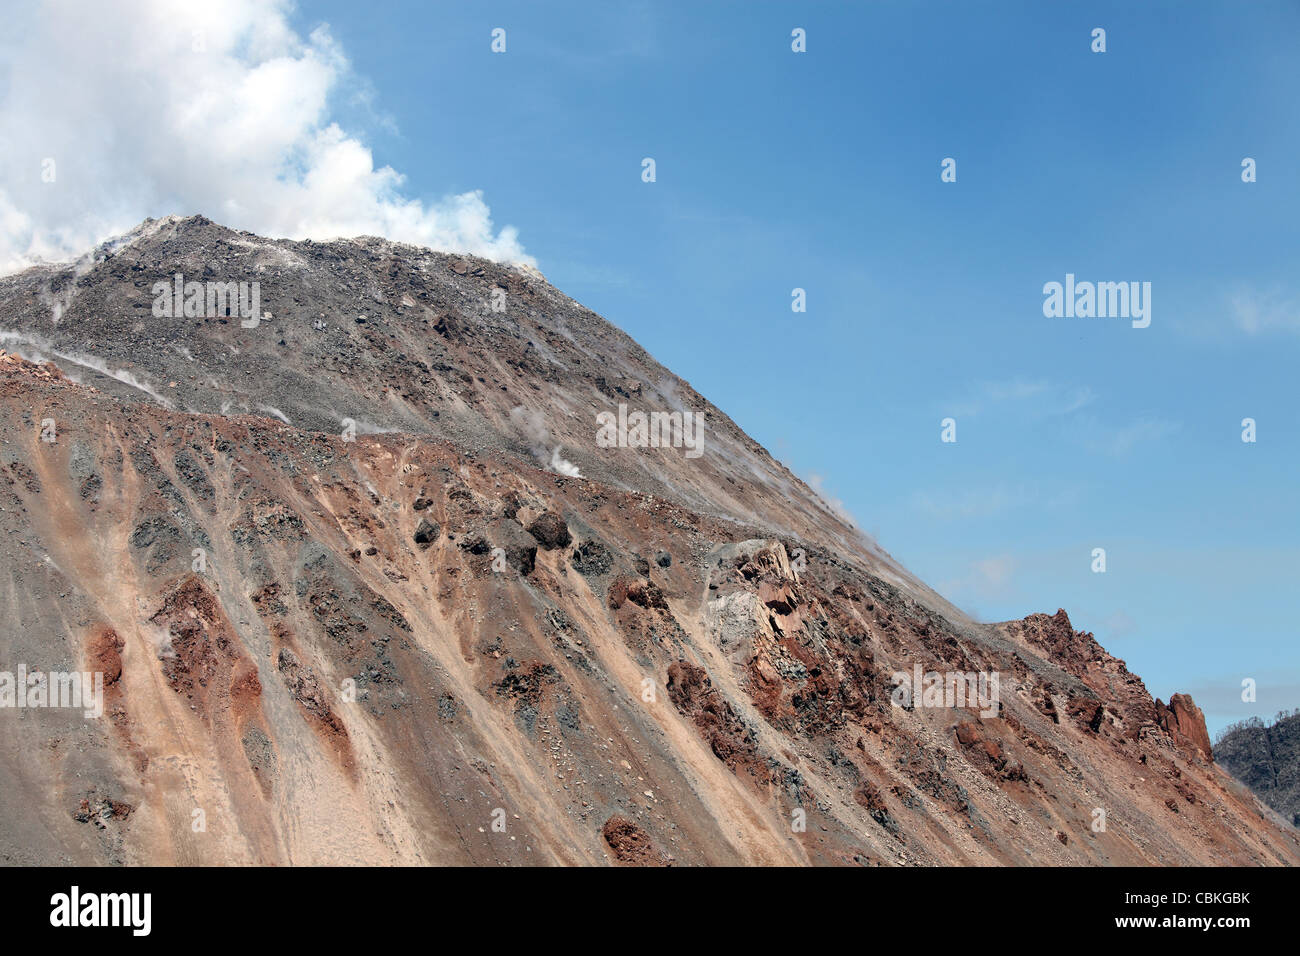 December 6, 2009 - Lava Dome sitting in summit crater of Chaiten volcano, Chile. - Stock Image